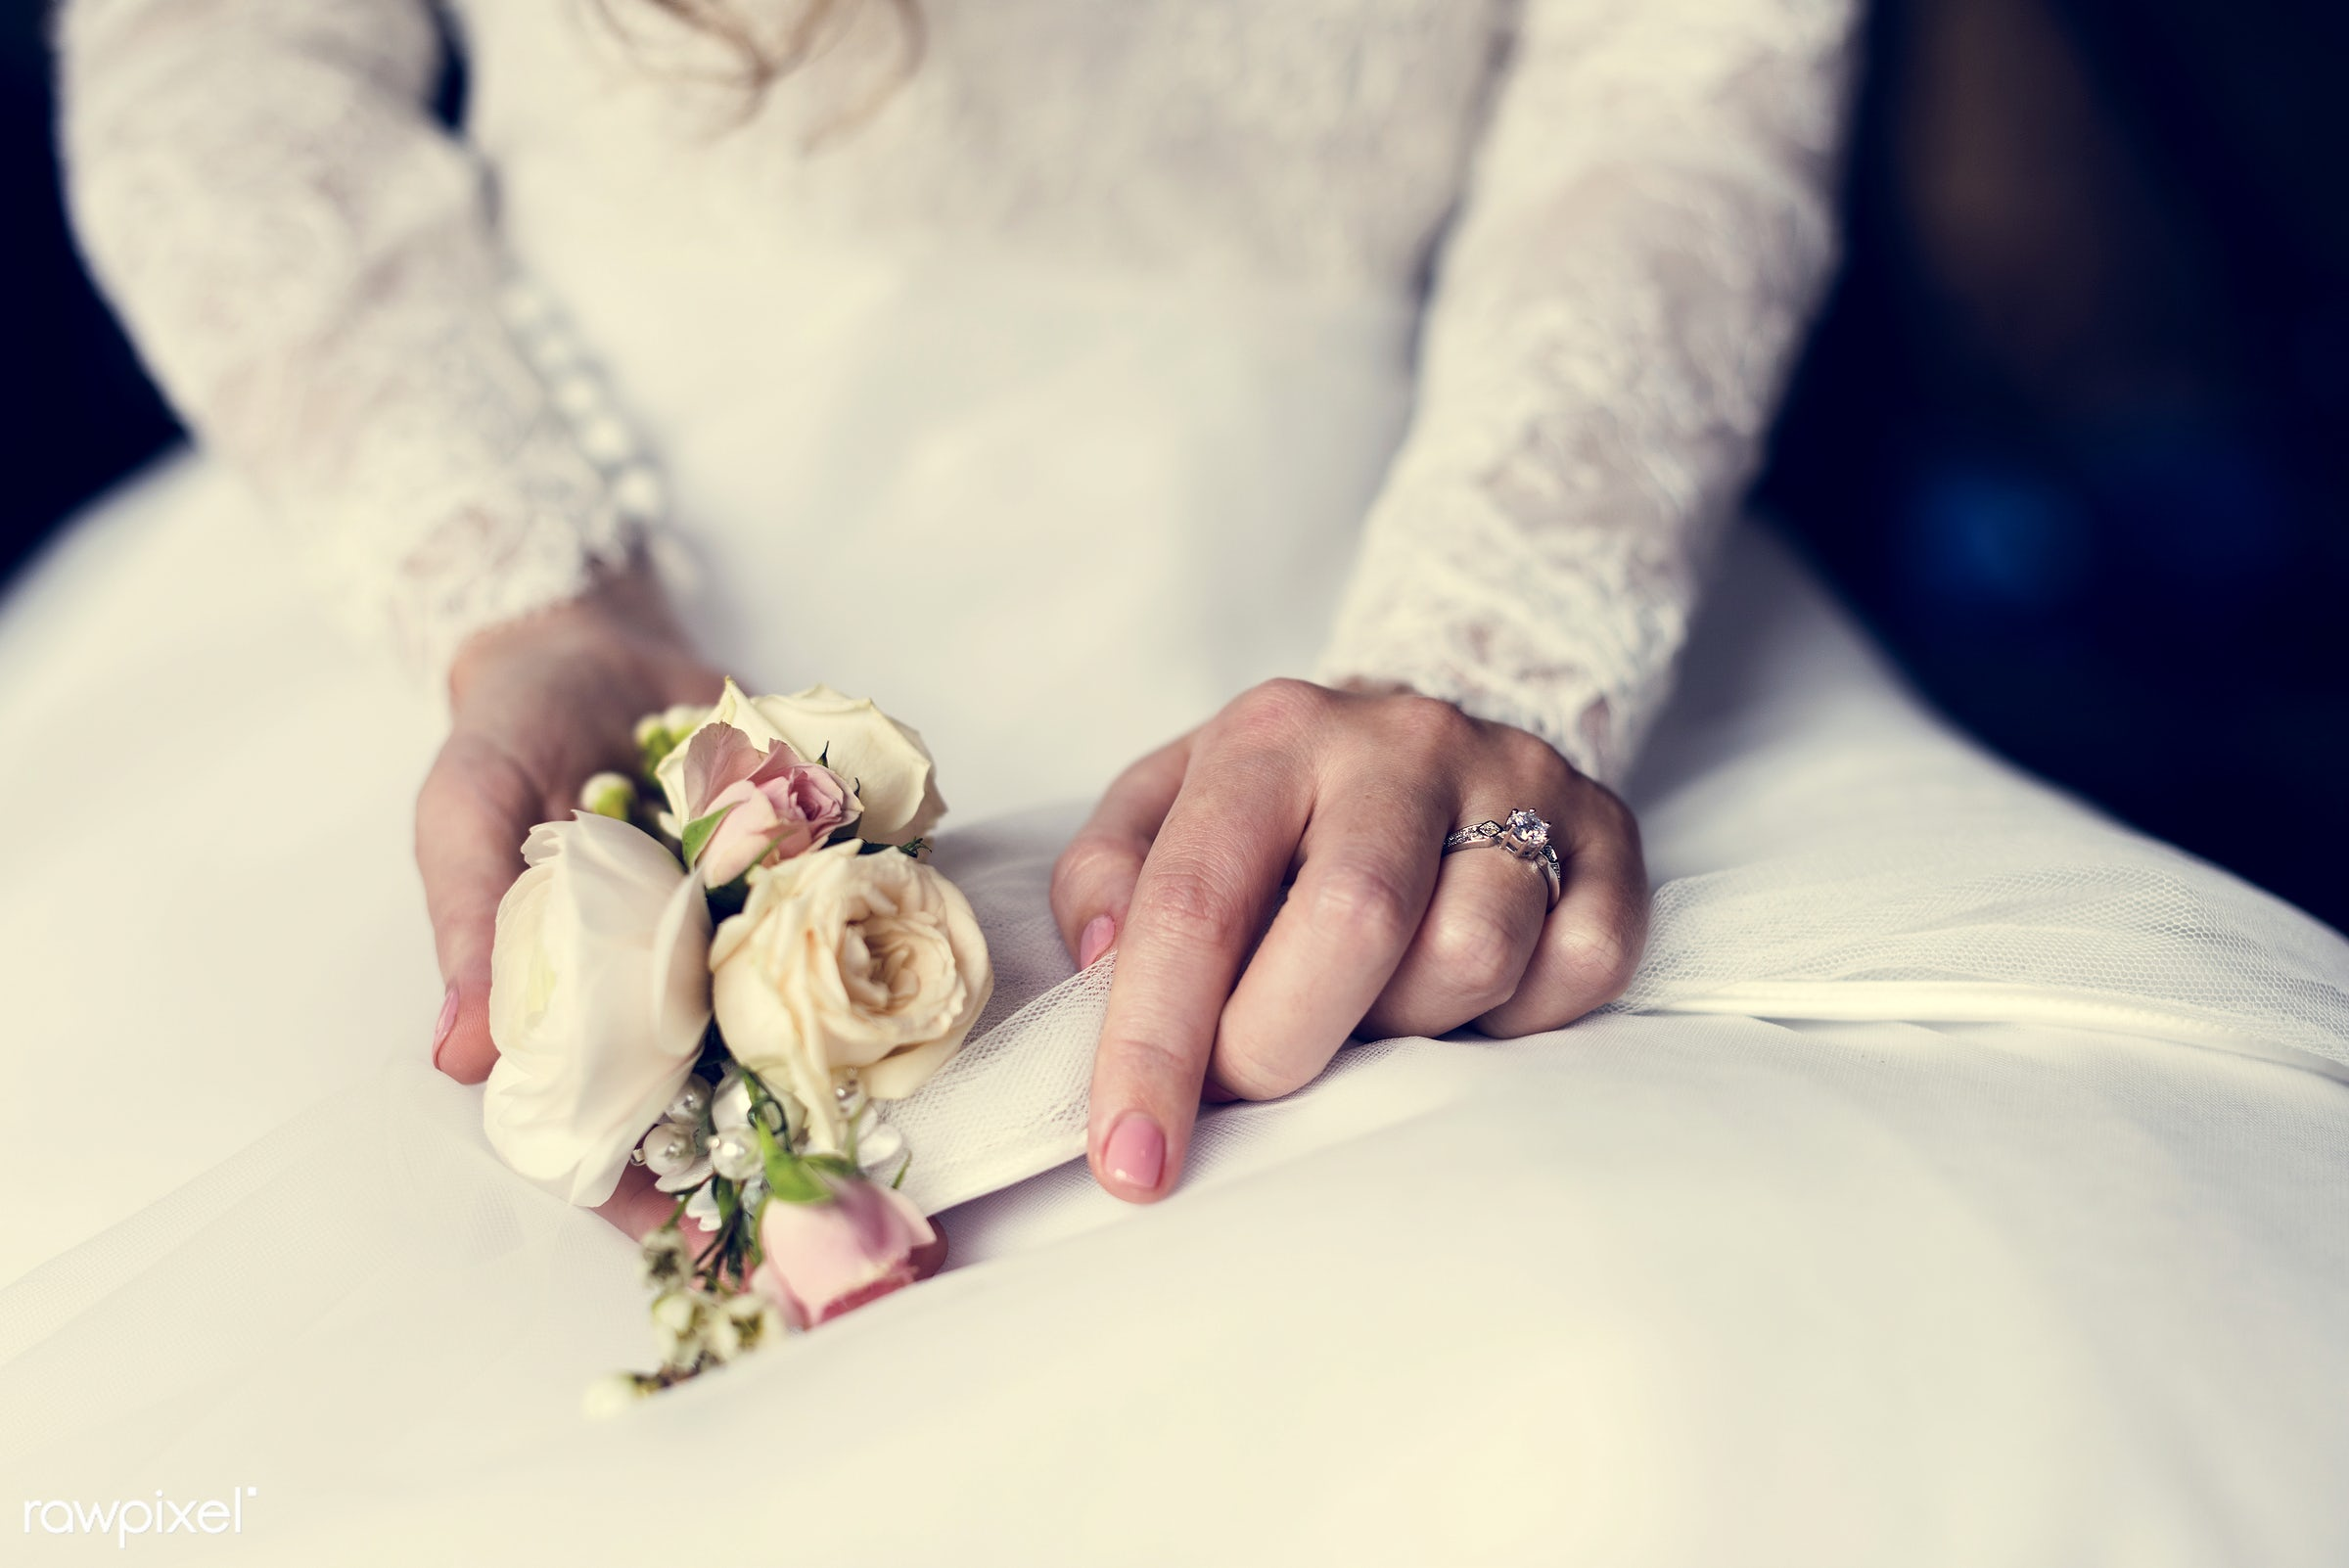 bouquet, person, holding, show, people, caucasian, glamour, love, woman, gown, flowers, cheerful, marry, ring, preparation,...